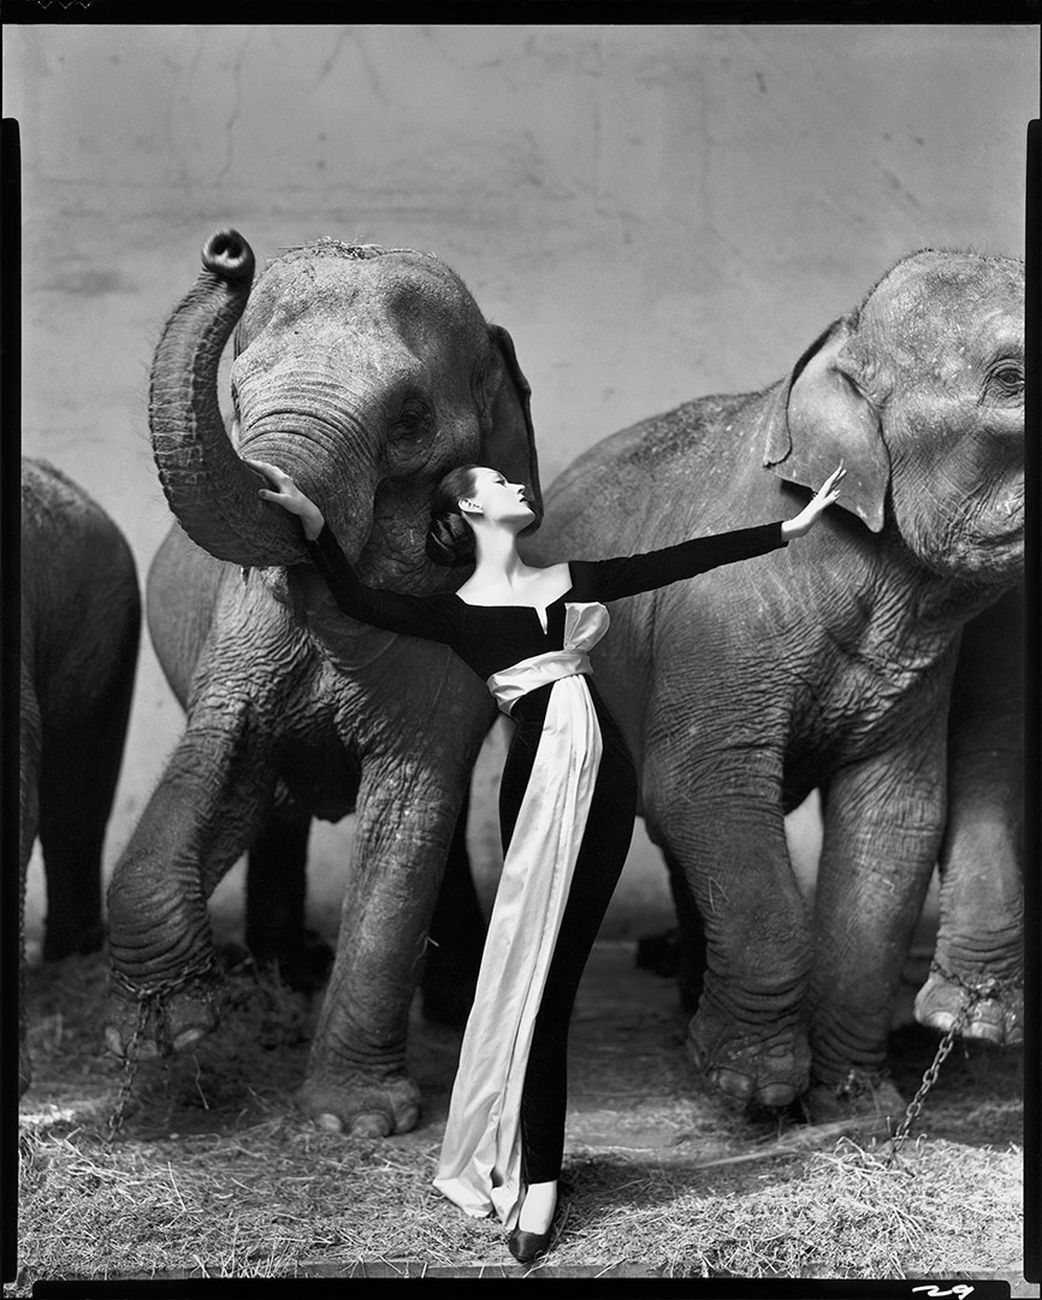 Richard Avedon, Dovima with Elephants, Evening Dress by Dior, Cirque d'Hiver, Paris, 1955 © Christie's Images Limited 2018